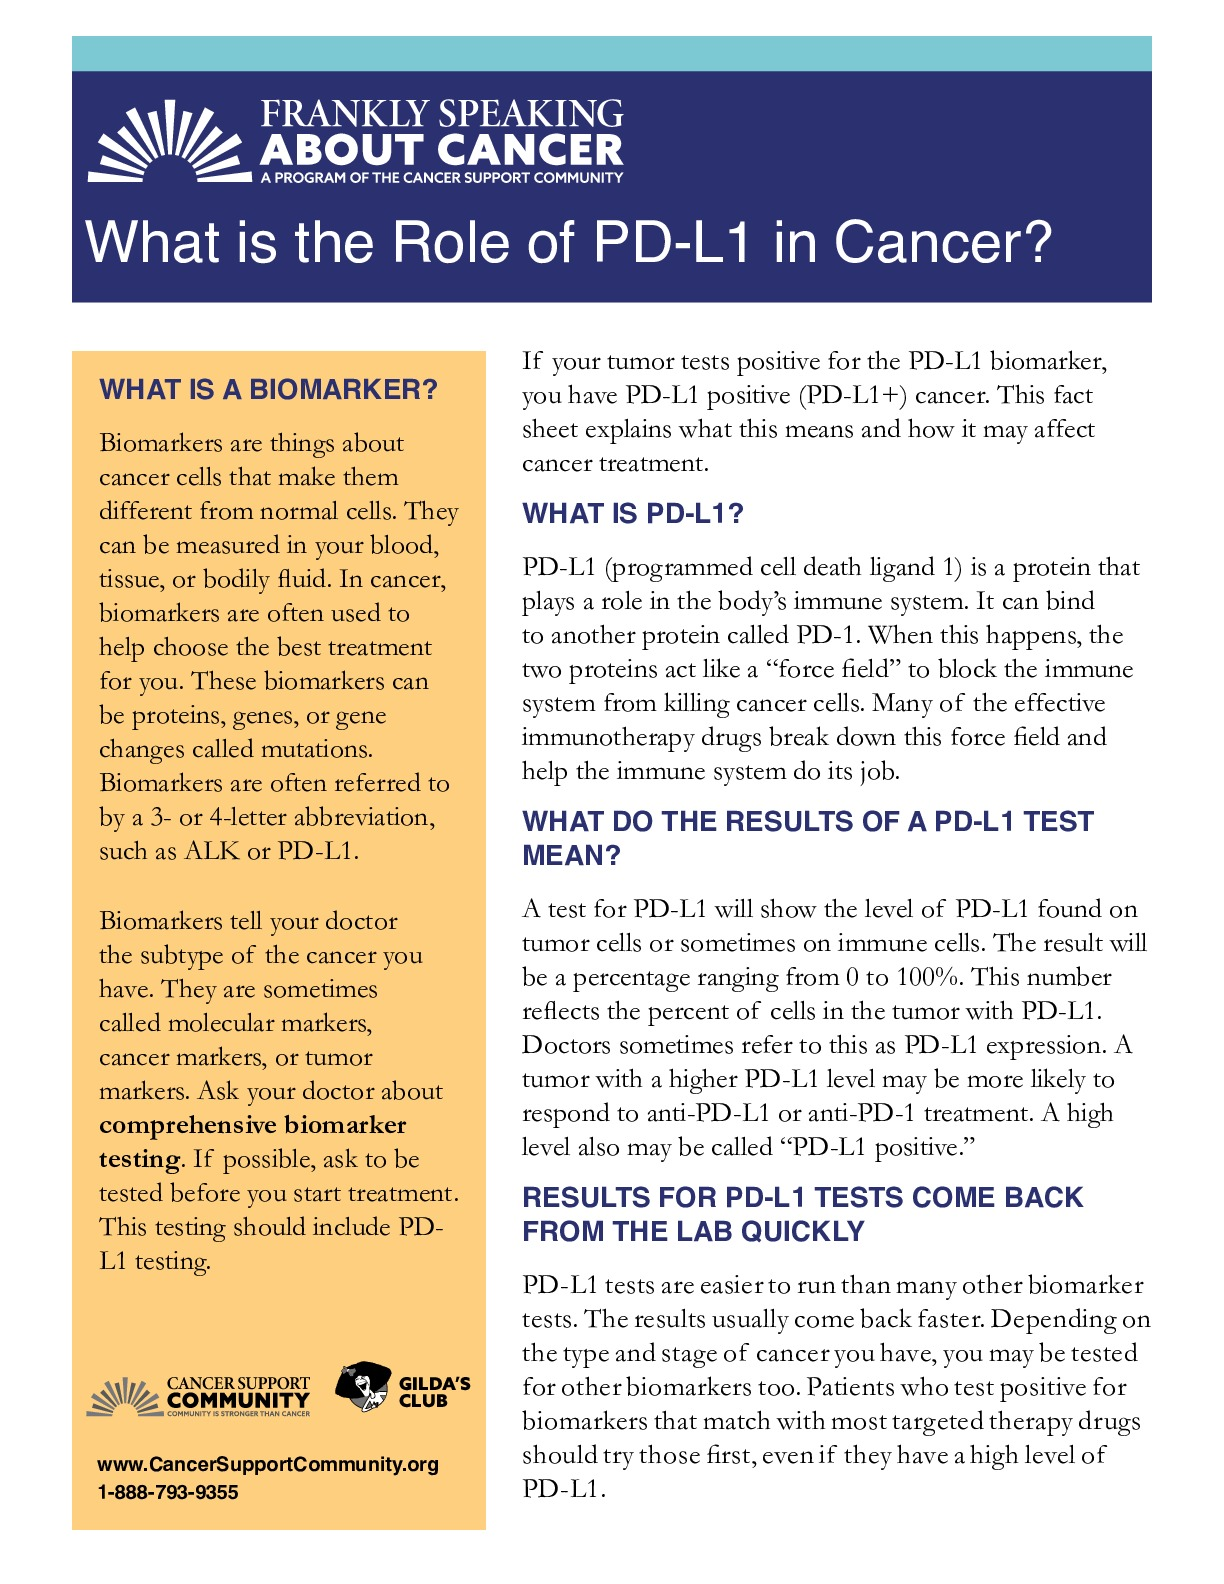 What Is the Role of PD-L1 in Cancer?